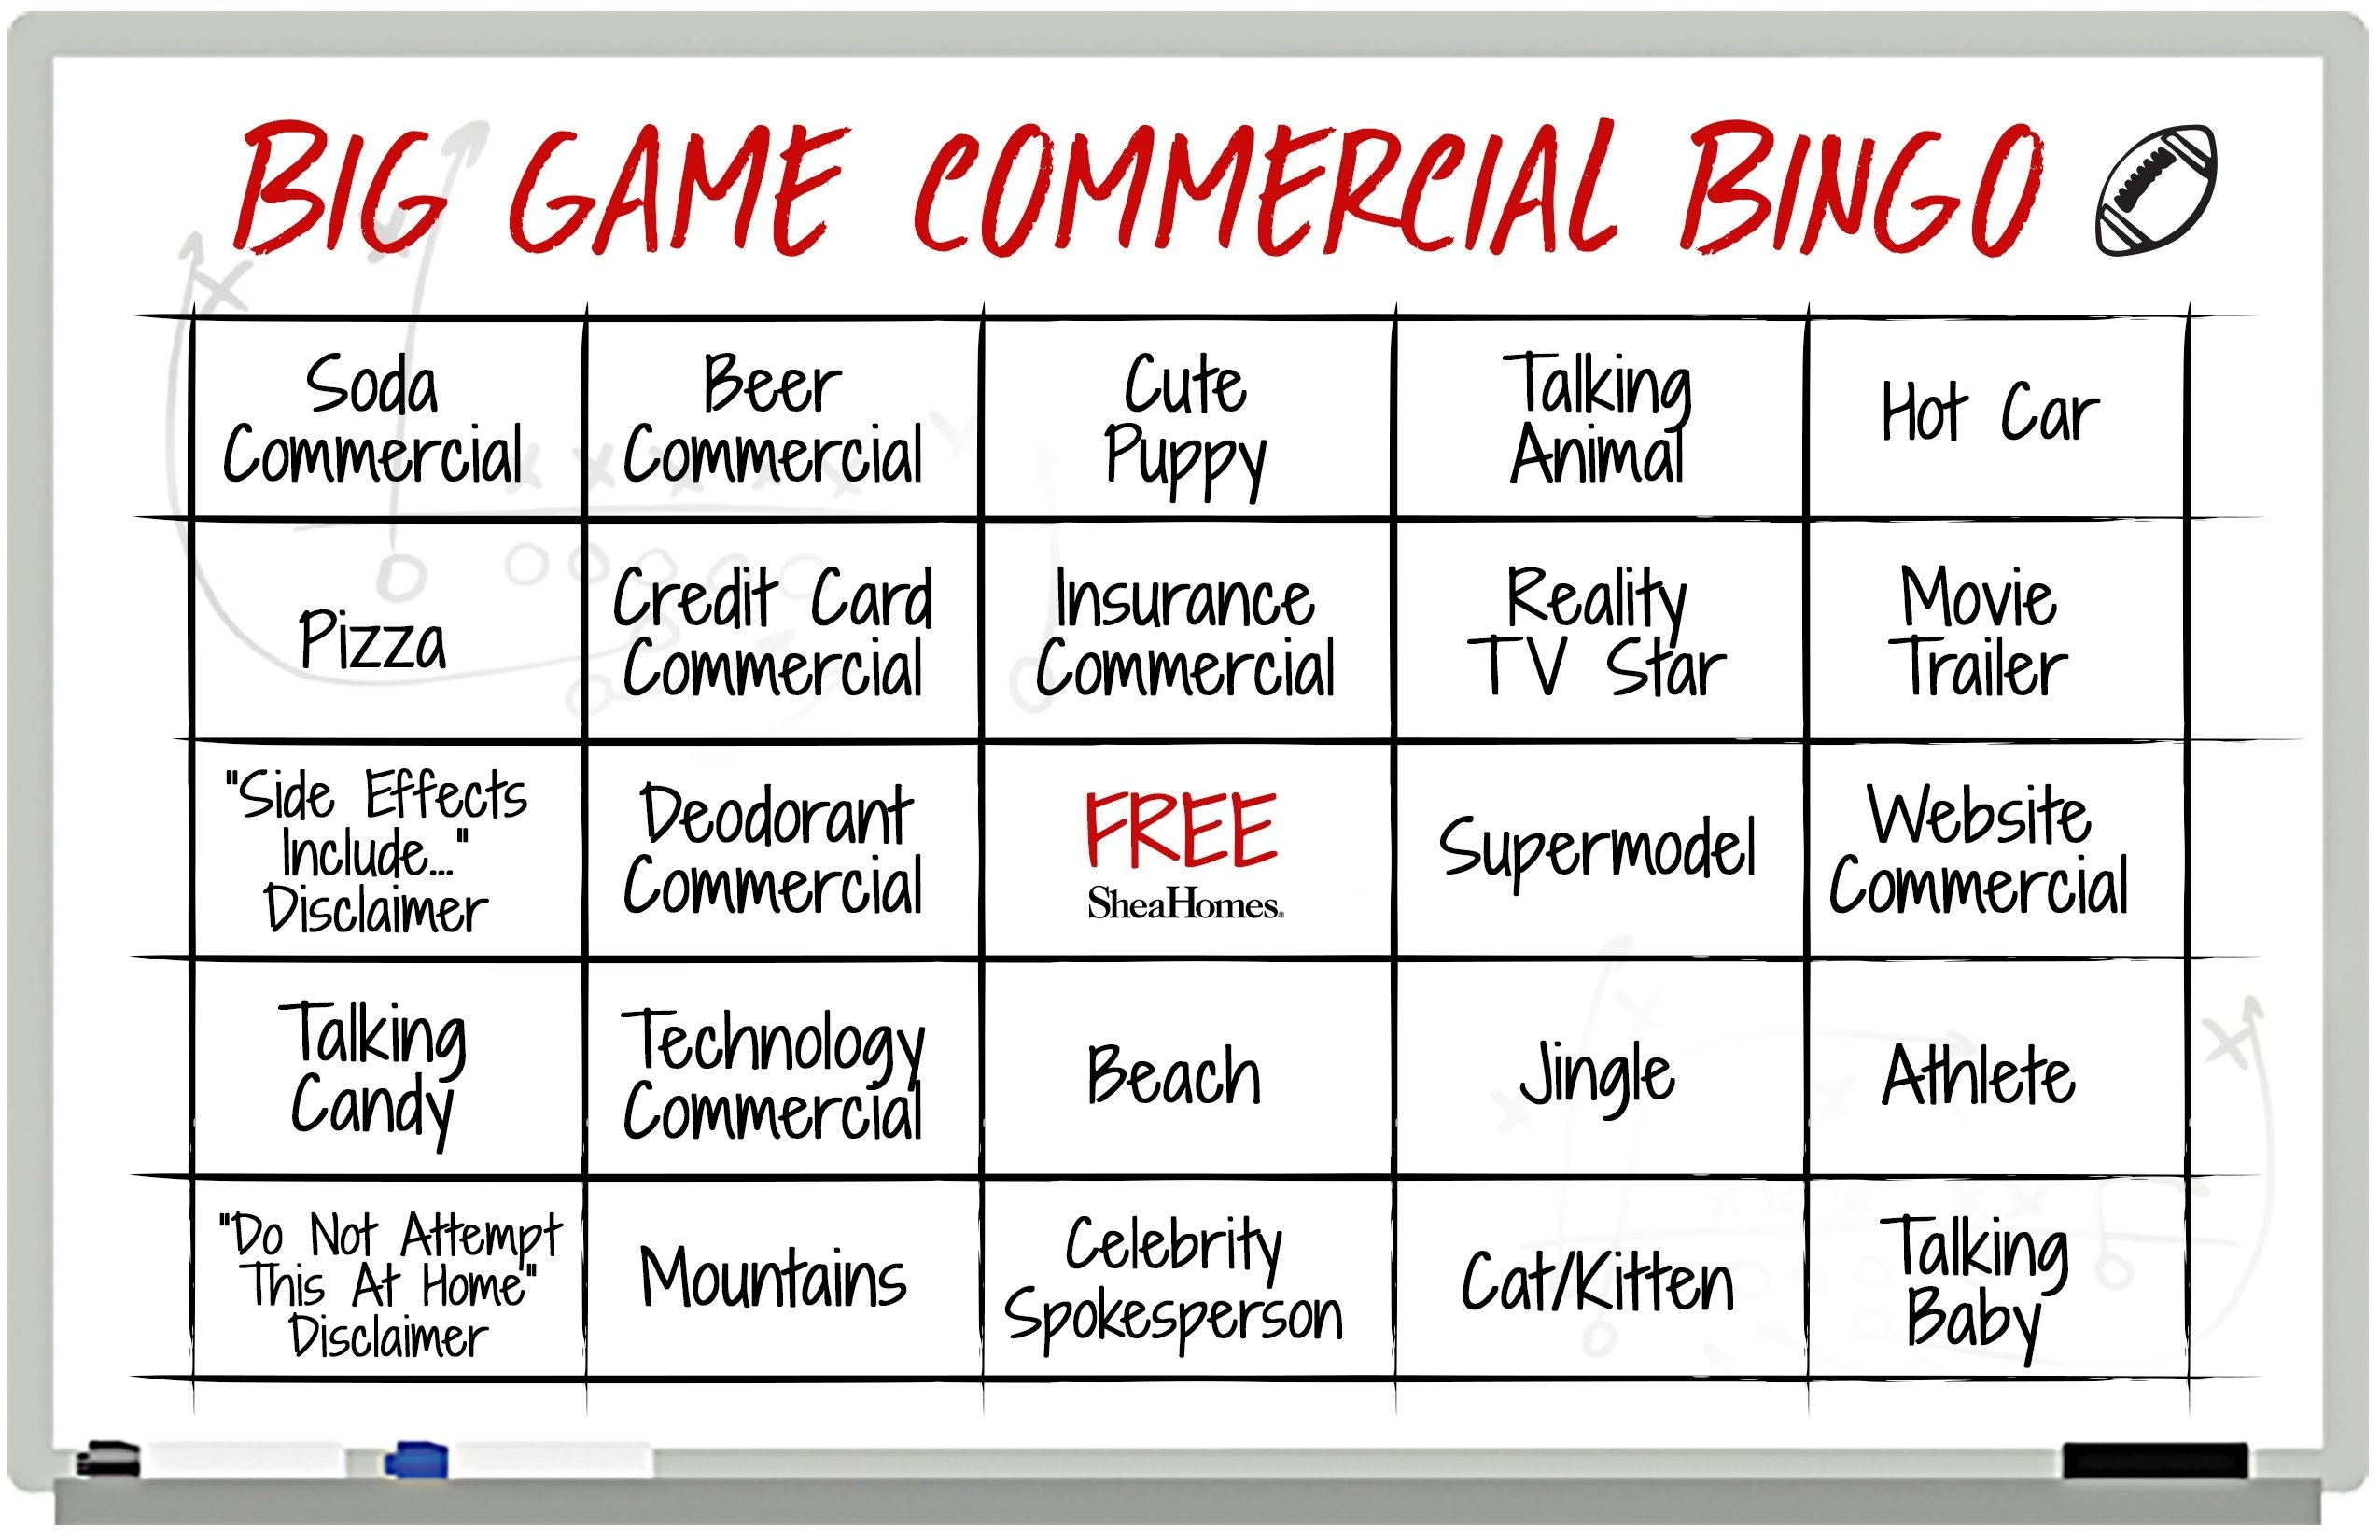 10 Perfect Super Bowl Party Games Ideas super bowl party game ideas for adults wedding